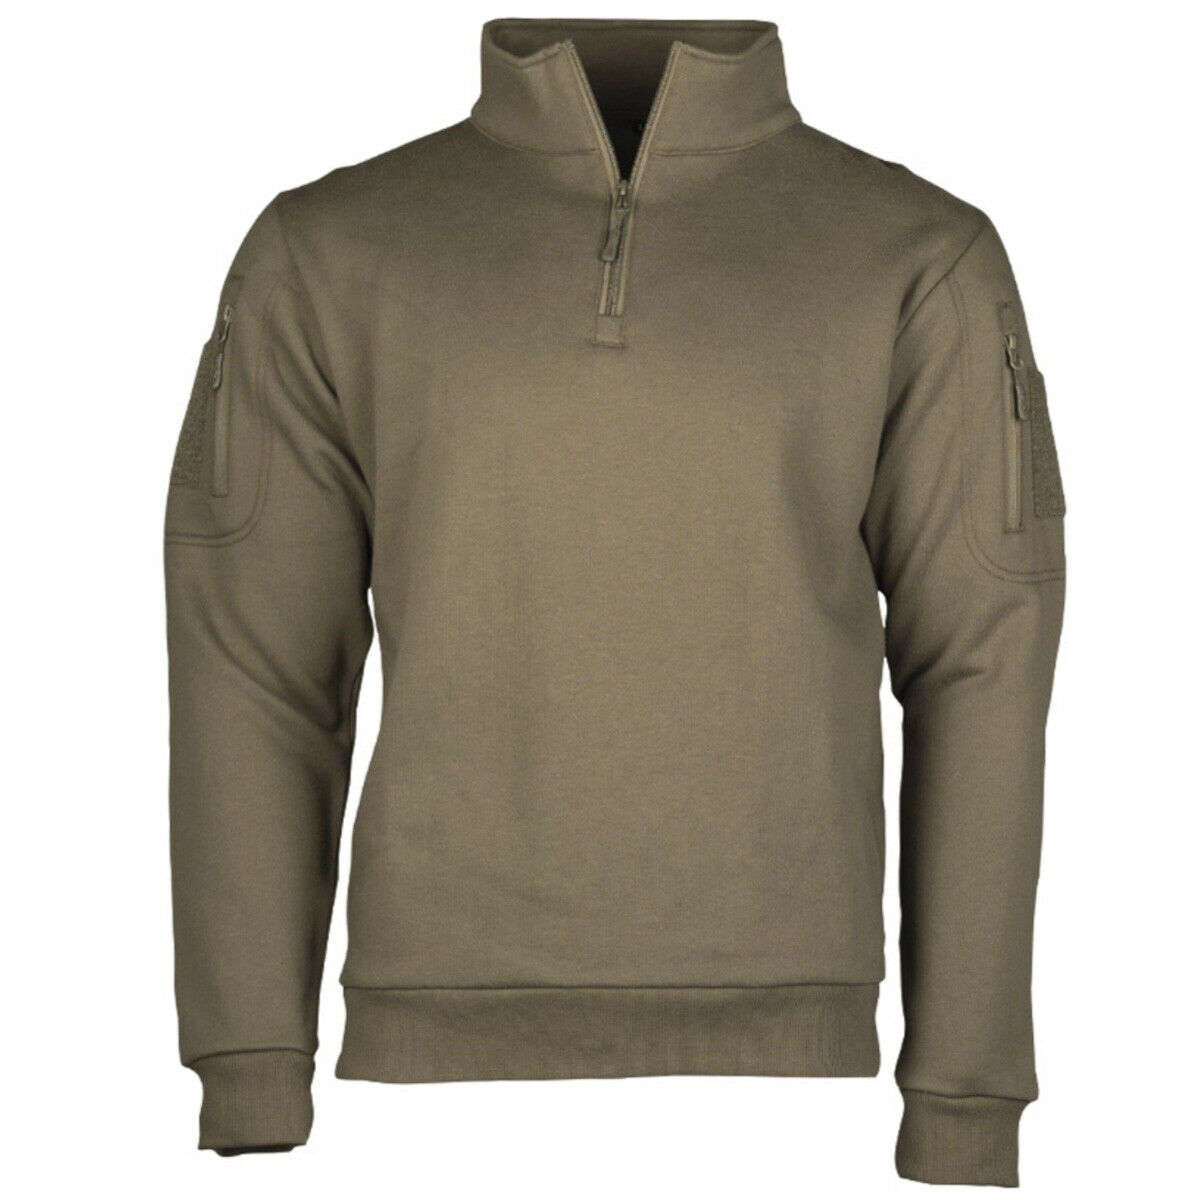 MIL-TEC TACTICAL SWEATER WITH 1/4 ZIP Mens Military Hiking Jumper Olive Green